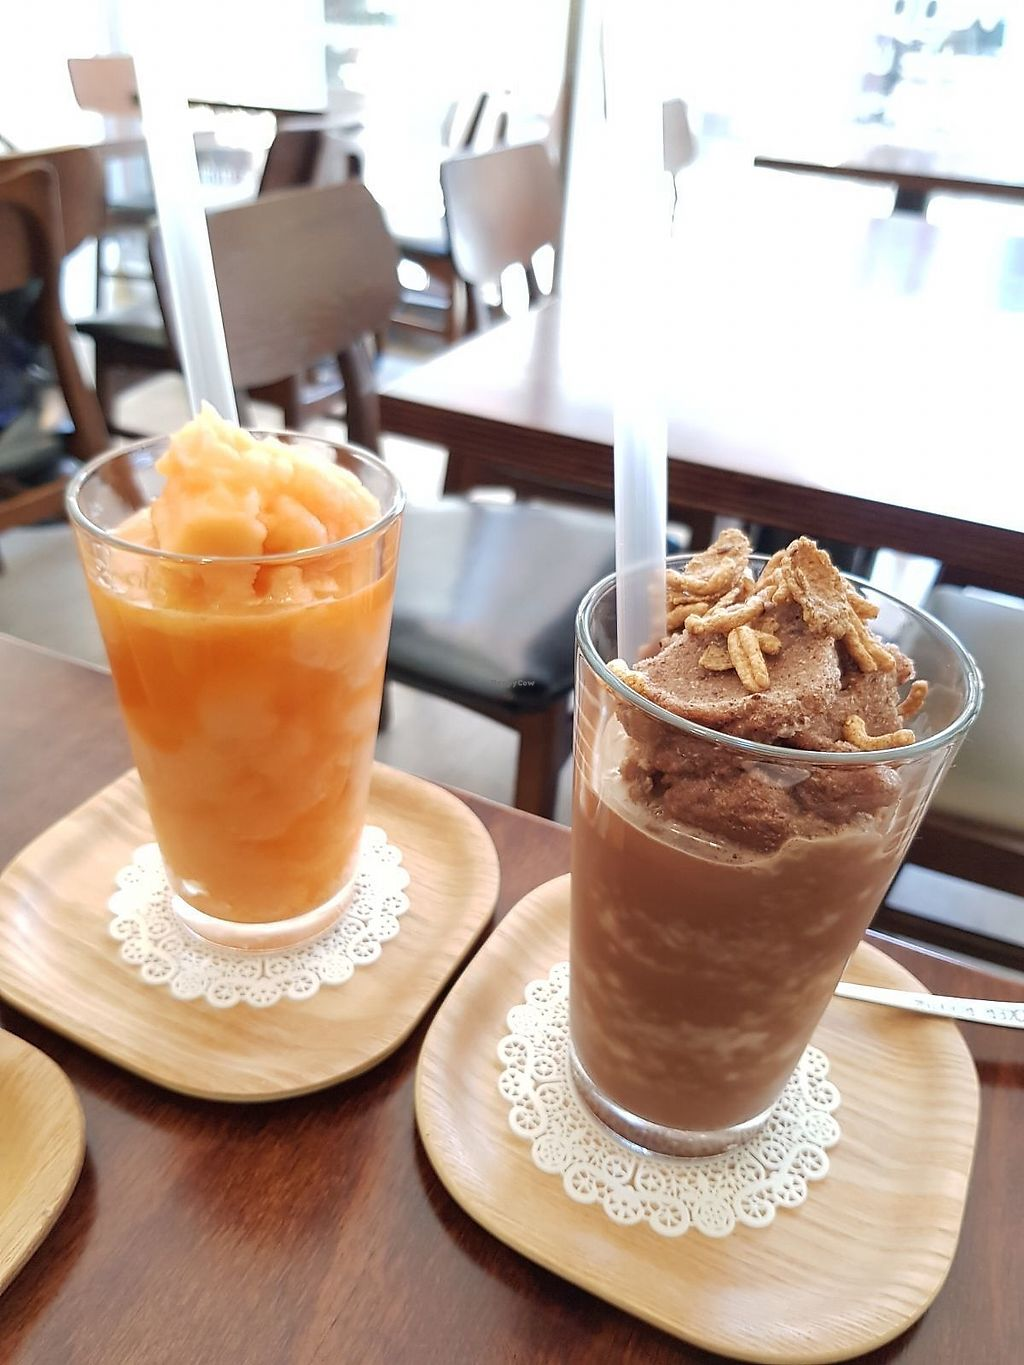 """Photo of Sun - 카페  by <a href=""""/members/profile/YiTingOng"""">YiTingOng</a> <br/>Carrot Citron Smoothie and Soy Mocha Chocochip Frappe <br/> April 11, 2018  - <a href='/contact/abuse/image/102461/383660'>Report</a>"""